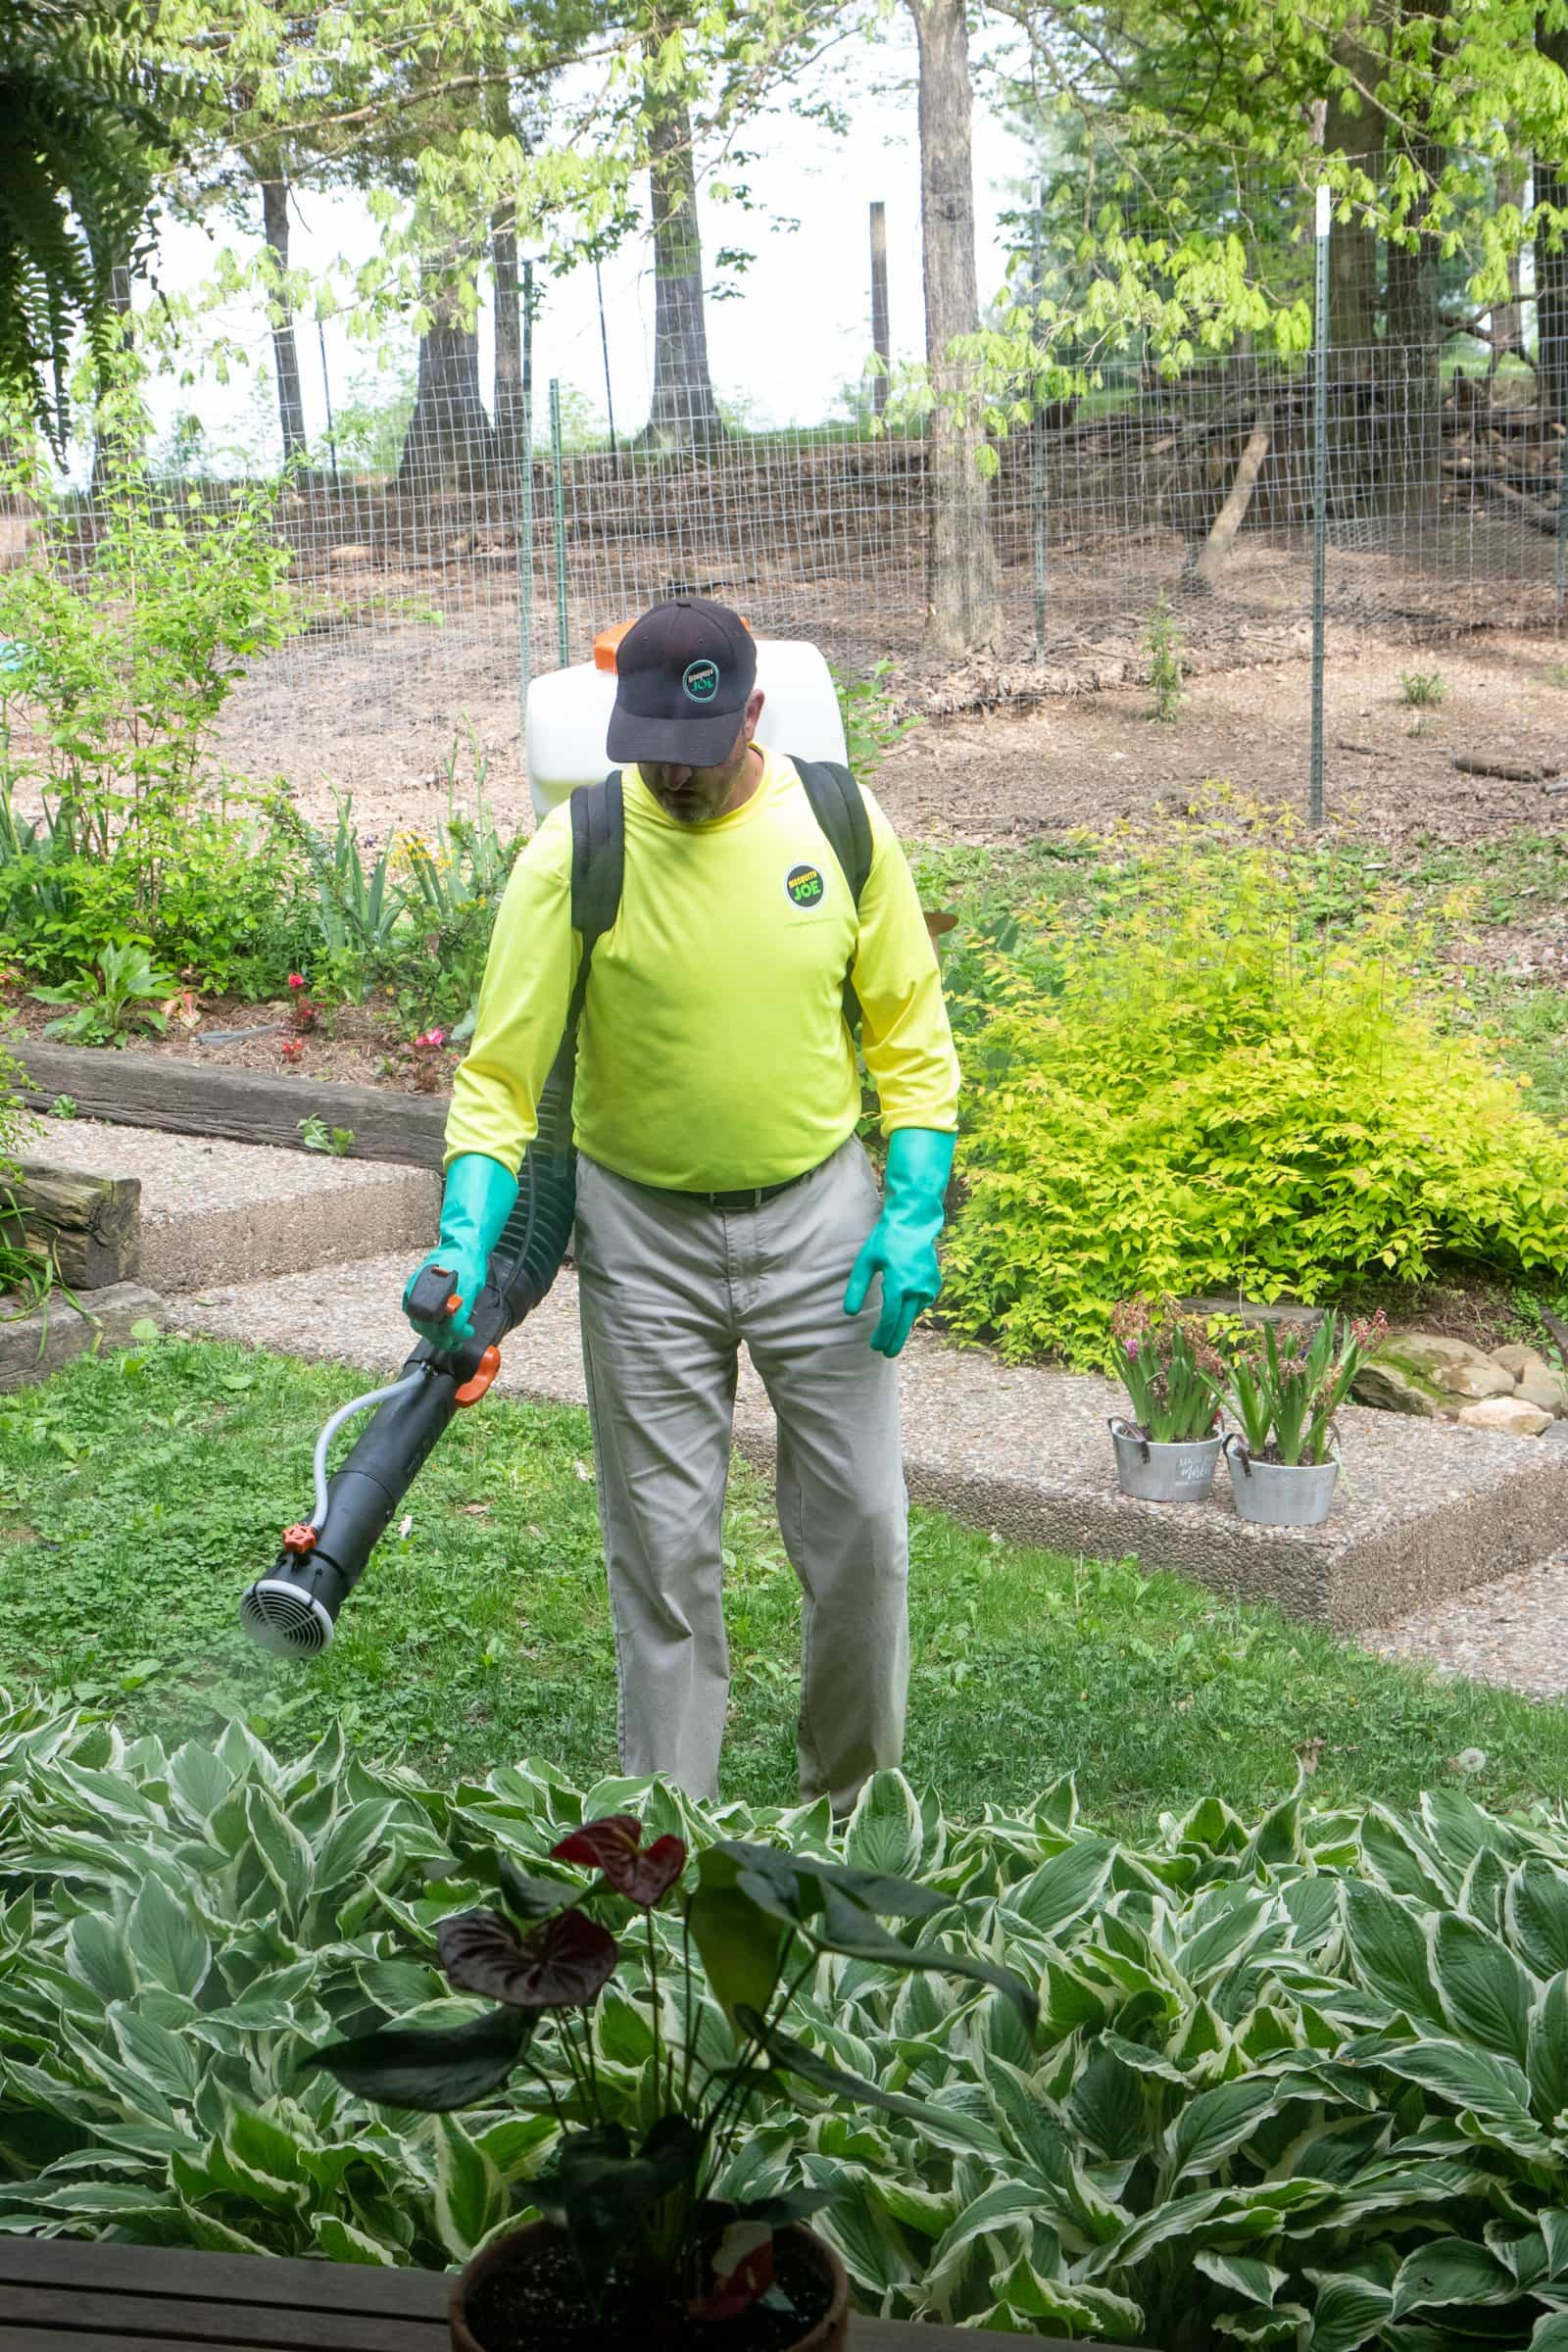 Man in protective gear providing a barrier spray to a yard to keep ticks away